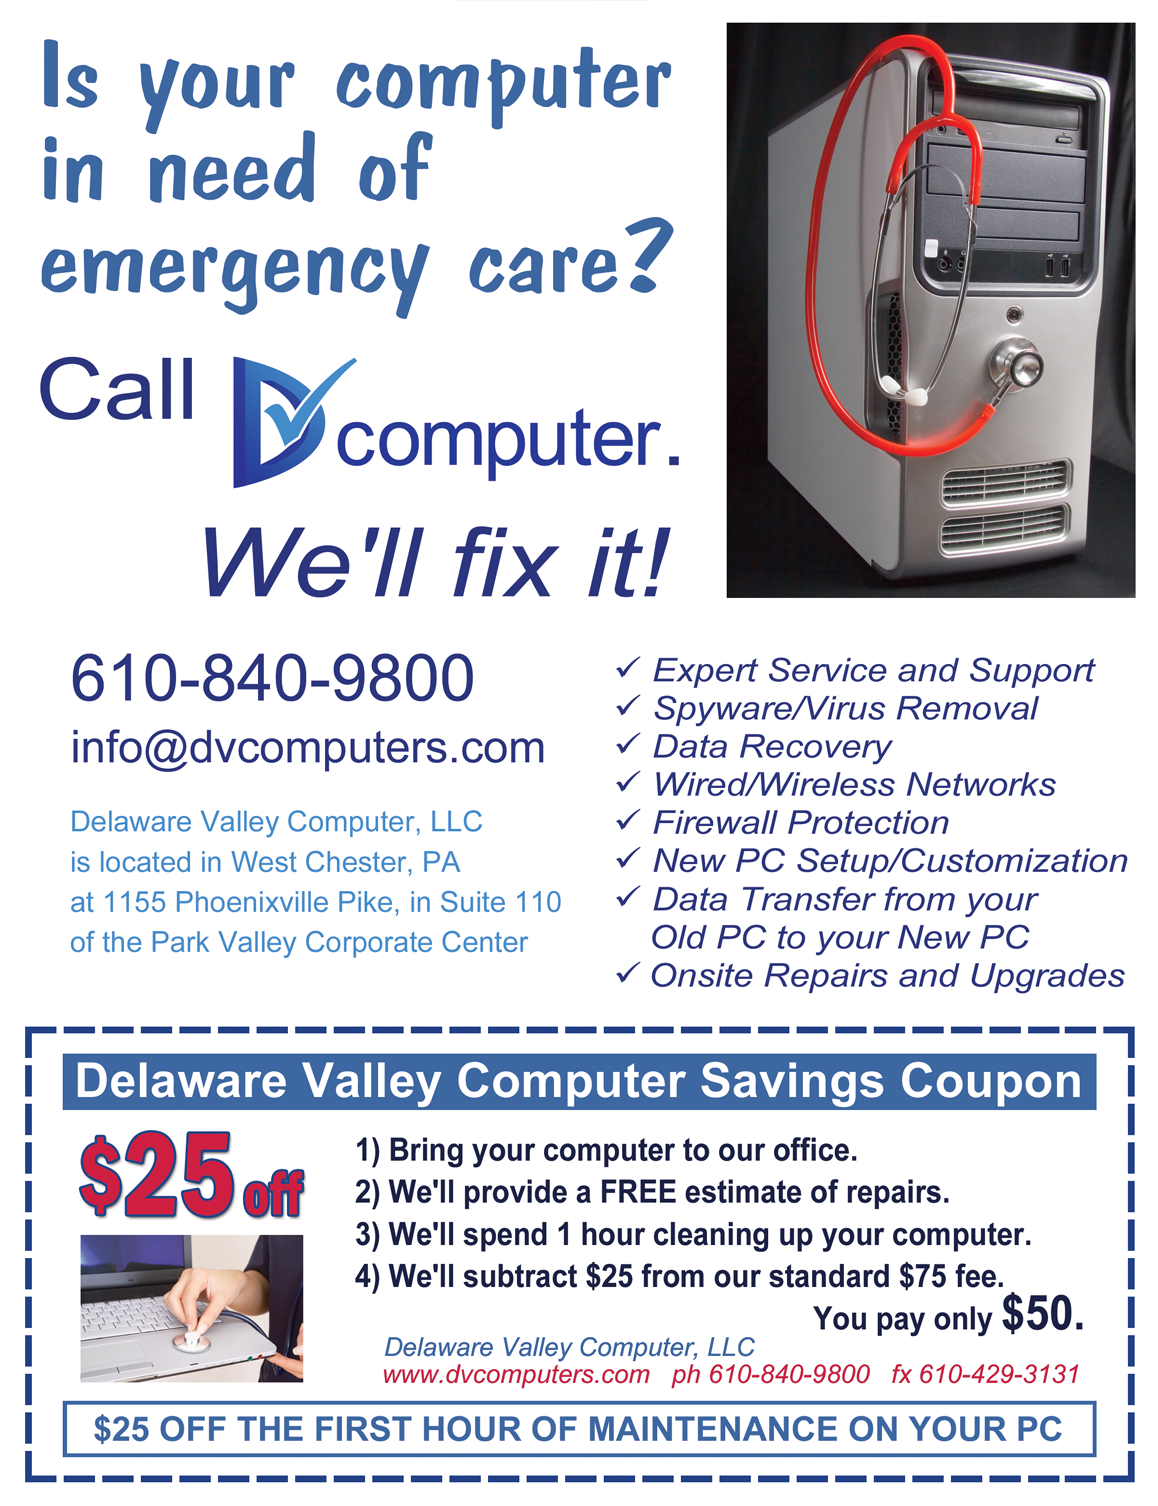 Delaware Valley Computer newspaper ad